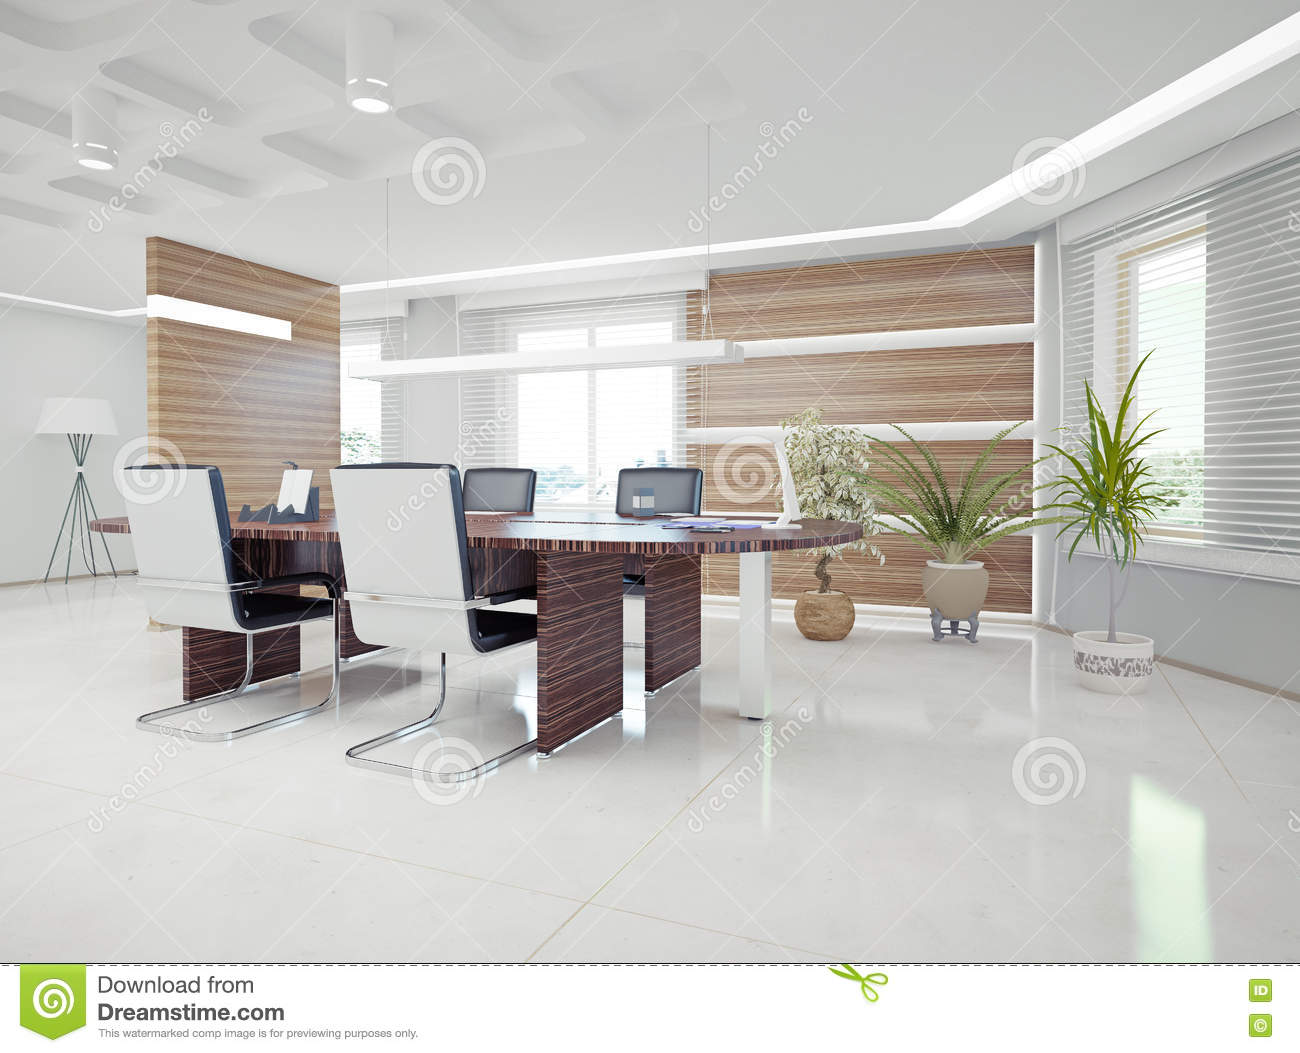 Exceptionnel Download Modern Office Interior Stock Illustration. Illustration Of  Decoration   38455714